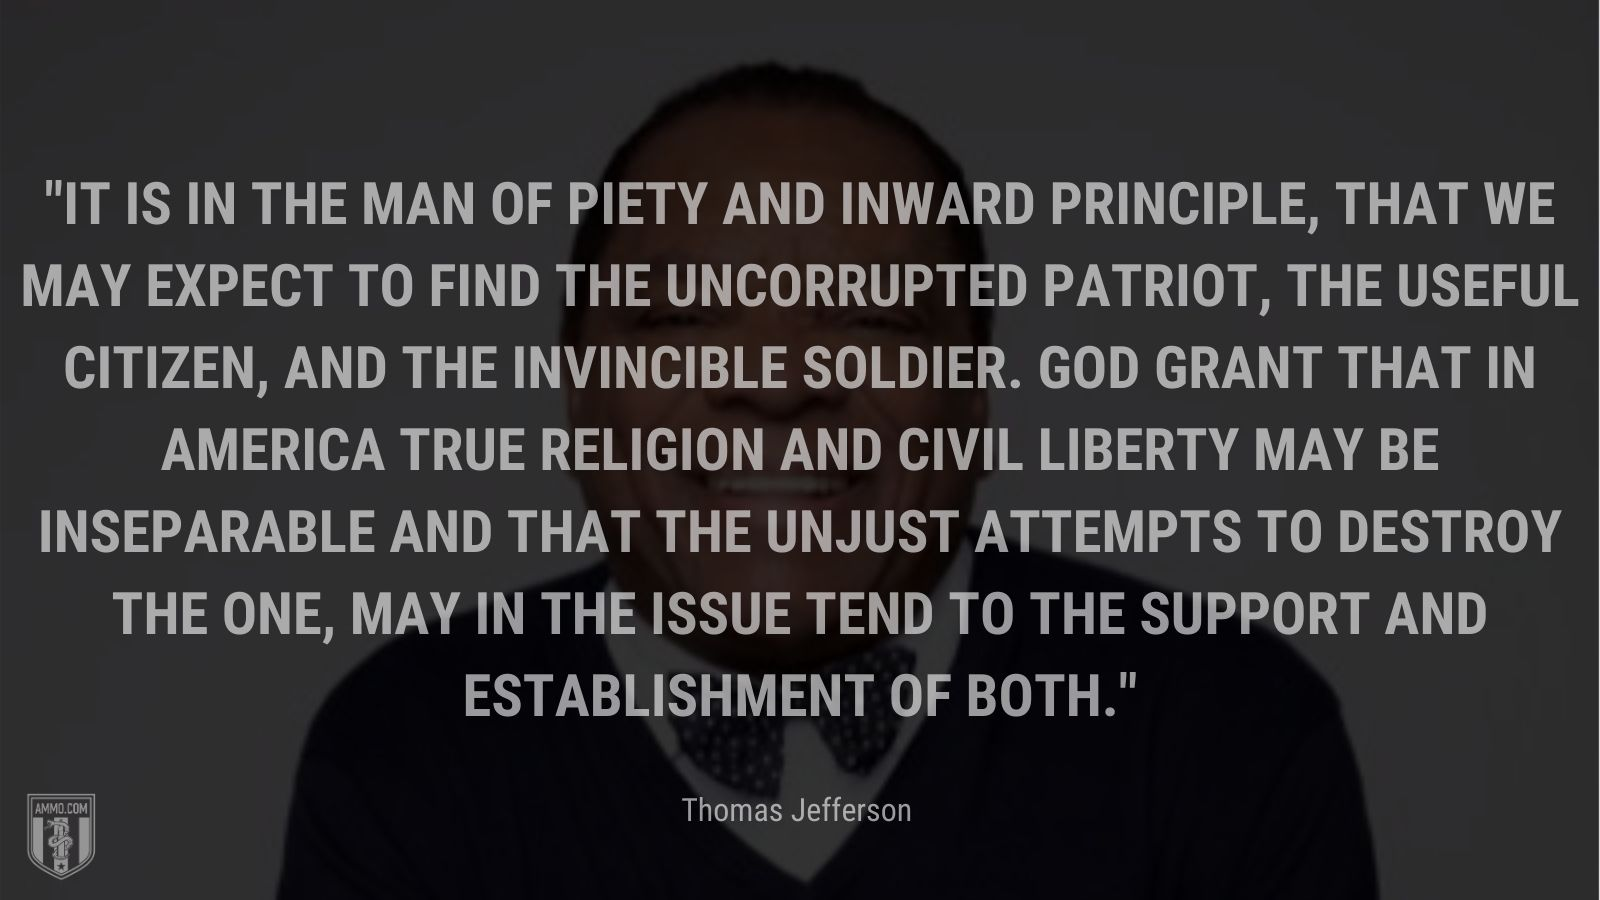 """""""It is in the man of piety and inward principle, that we may expect to find the uncorrupted patriot, the useful citizen, and the invincible soldier. God grant that in America true religion and civil liberty may be inseparable and that the unjust attempts to destroy the one, may in the issue tend to the support and establishment of both."""" - John Witherspoon"""